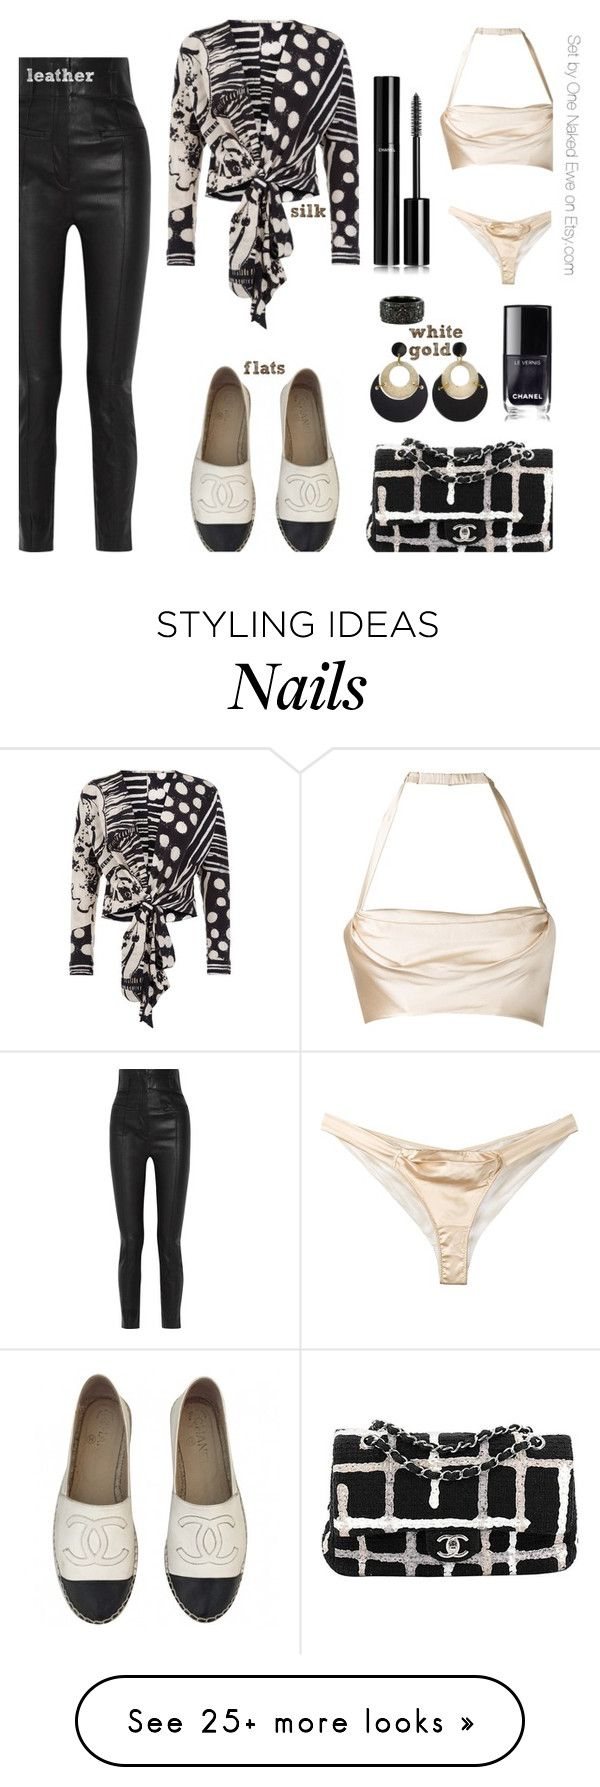 """Form, function, and fabric"" by onenakedewe on Polyvore featuring Chanel, Haider Ackermann, Bianca Elgar, Dolci Follie, Toolally, Luca Jouel and flats"